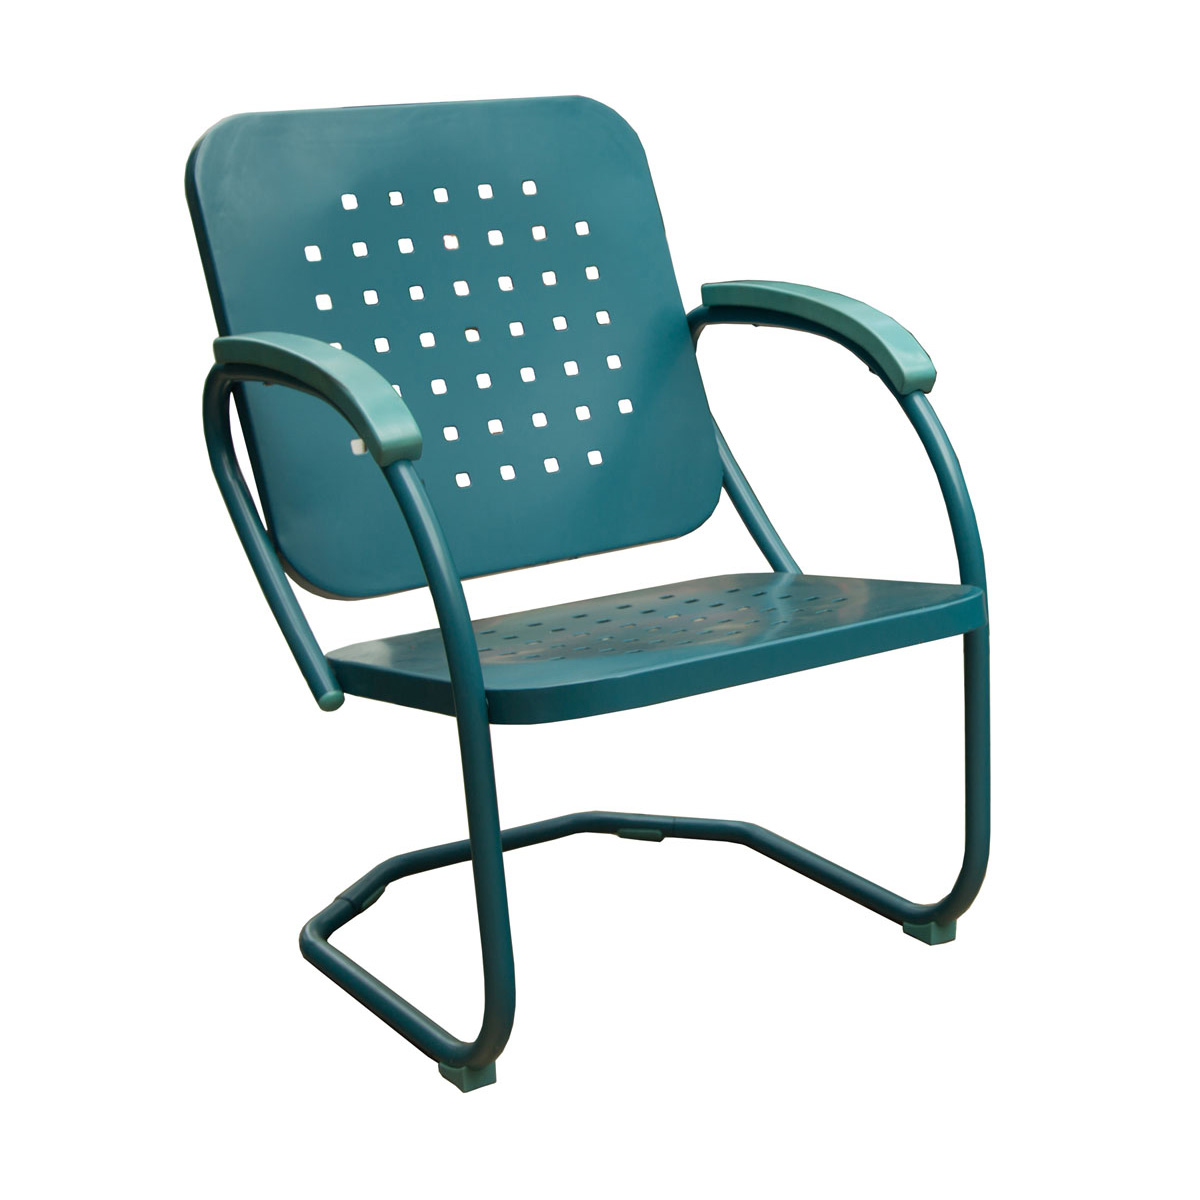 Hanover Retro Set Of 2 Metal C Spring Chairs In Caribbean